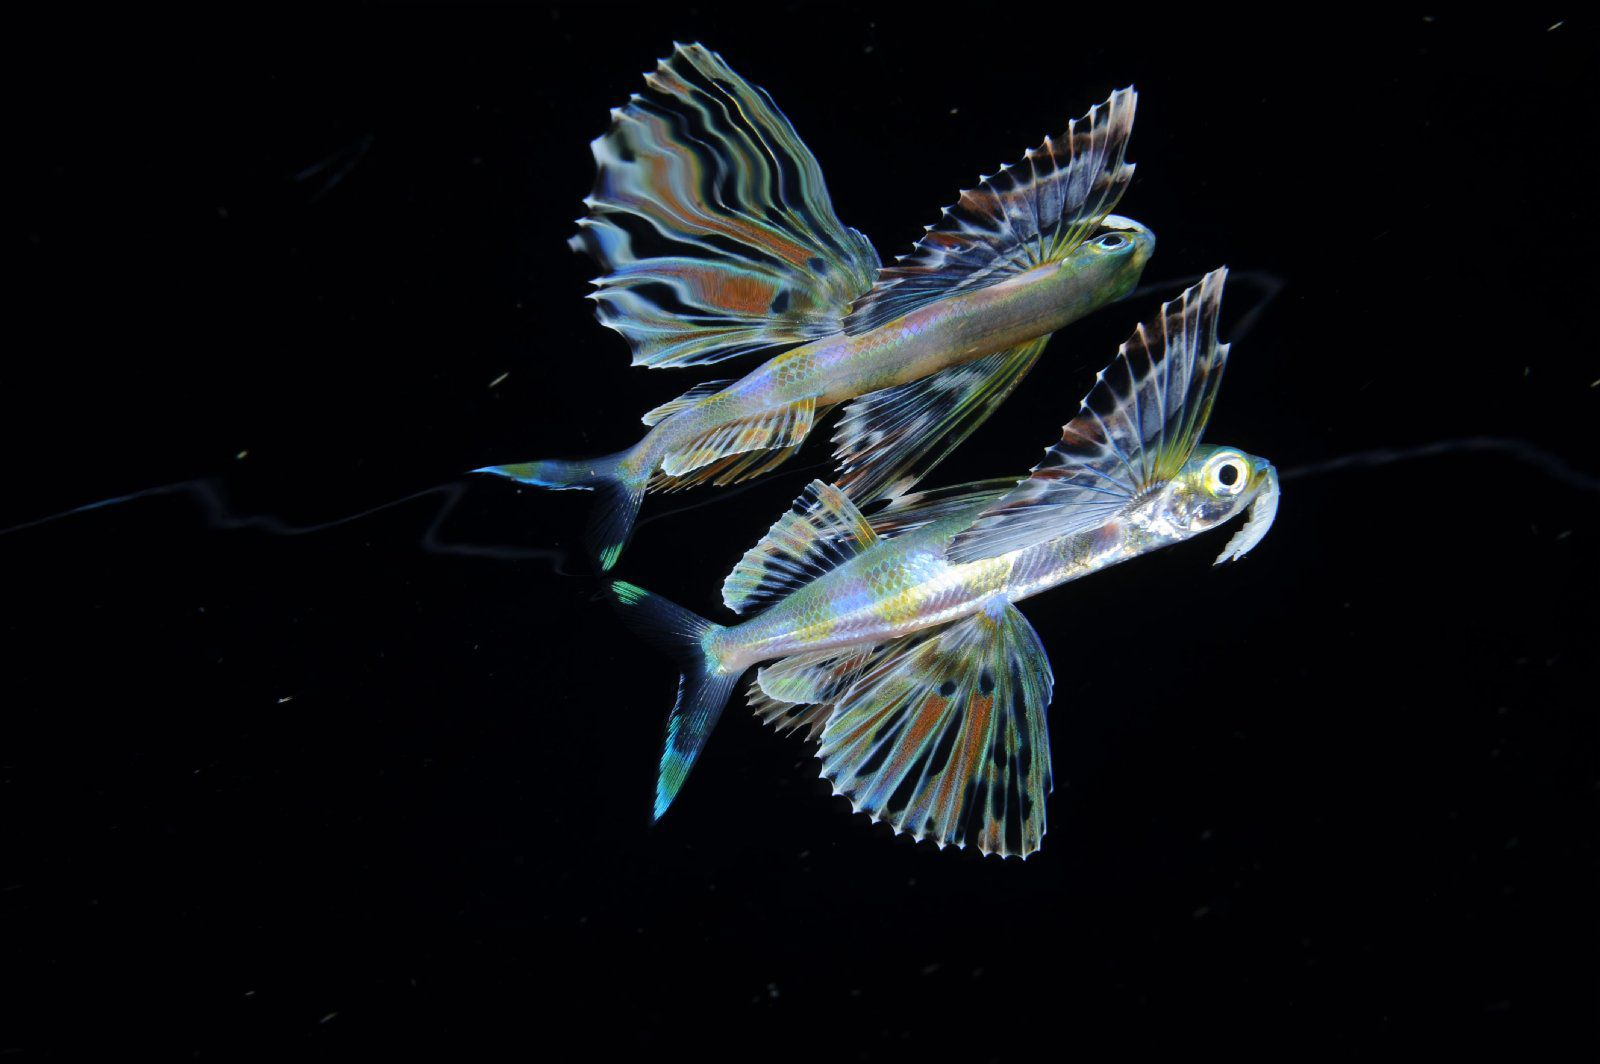 Flying fish at night in the Sargasso Sea near Challenger